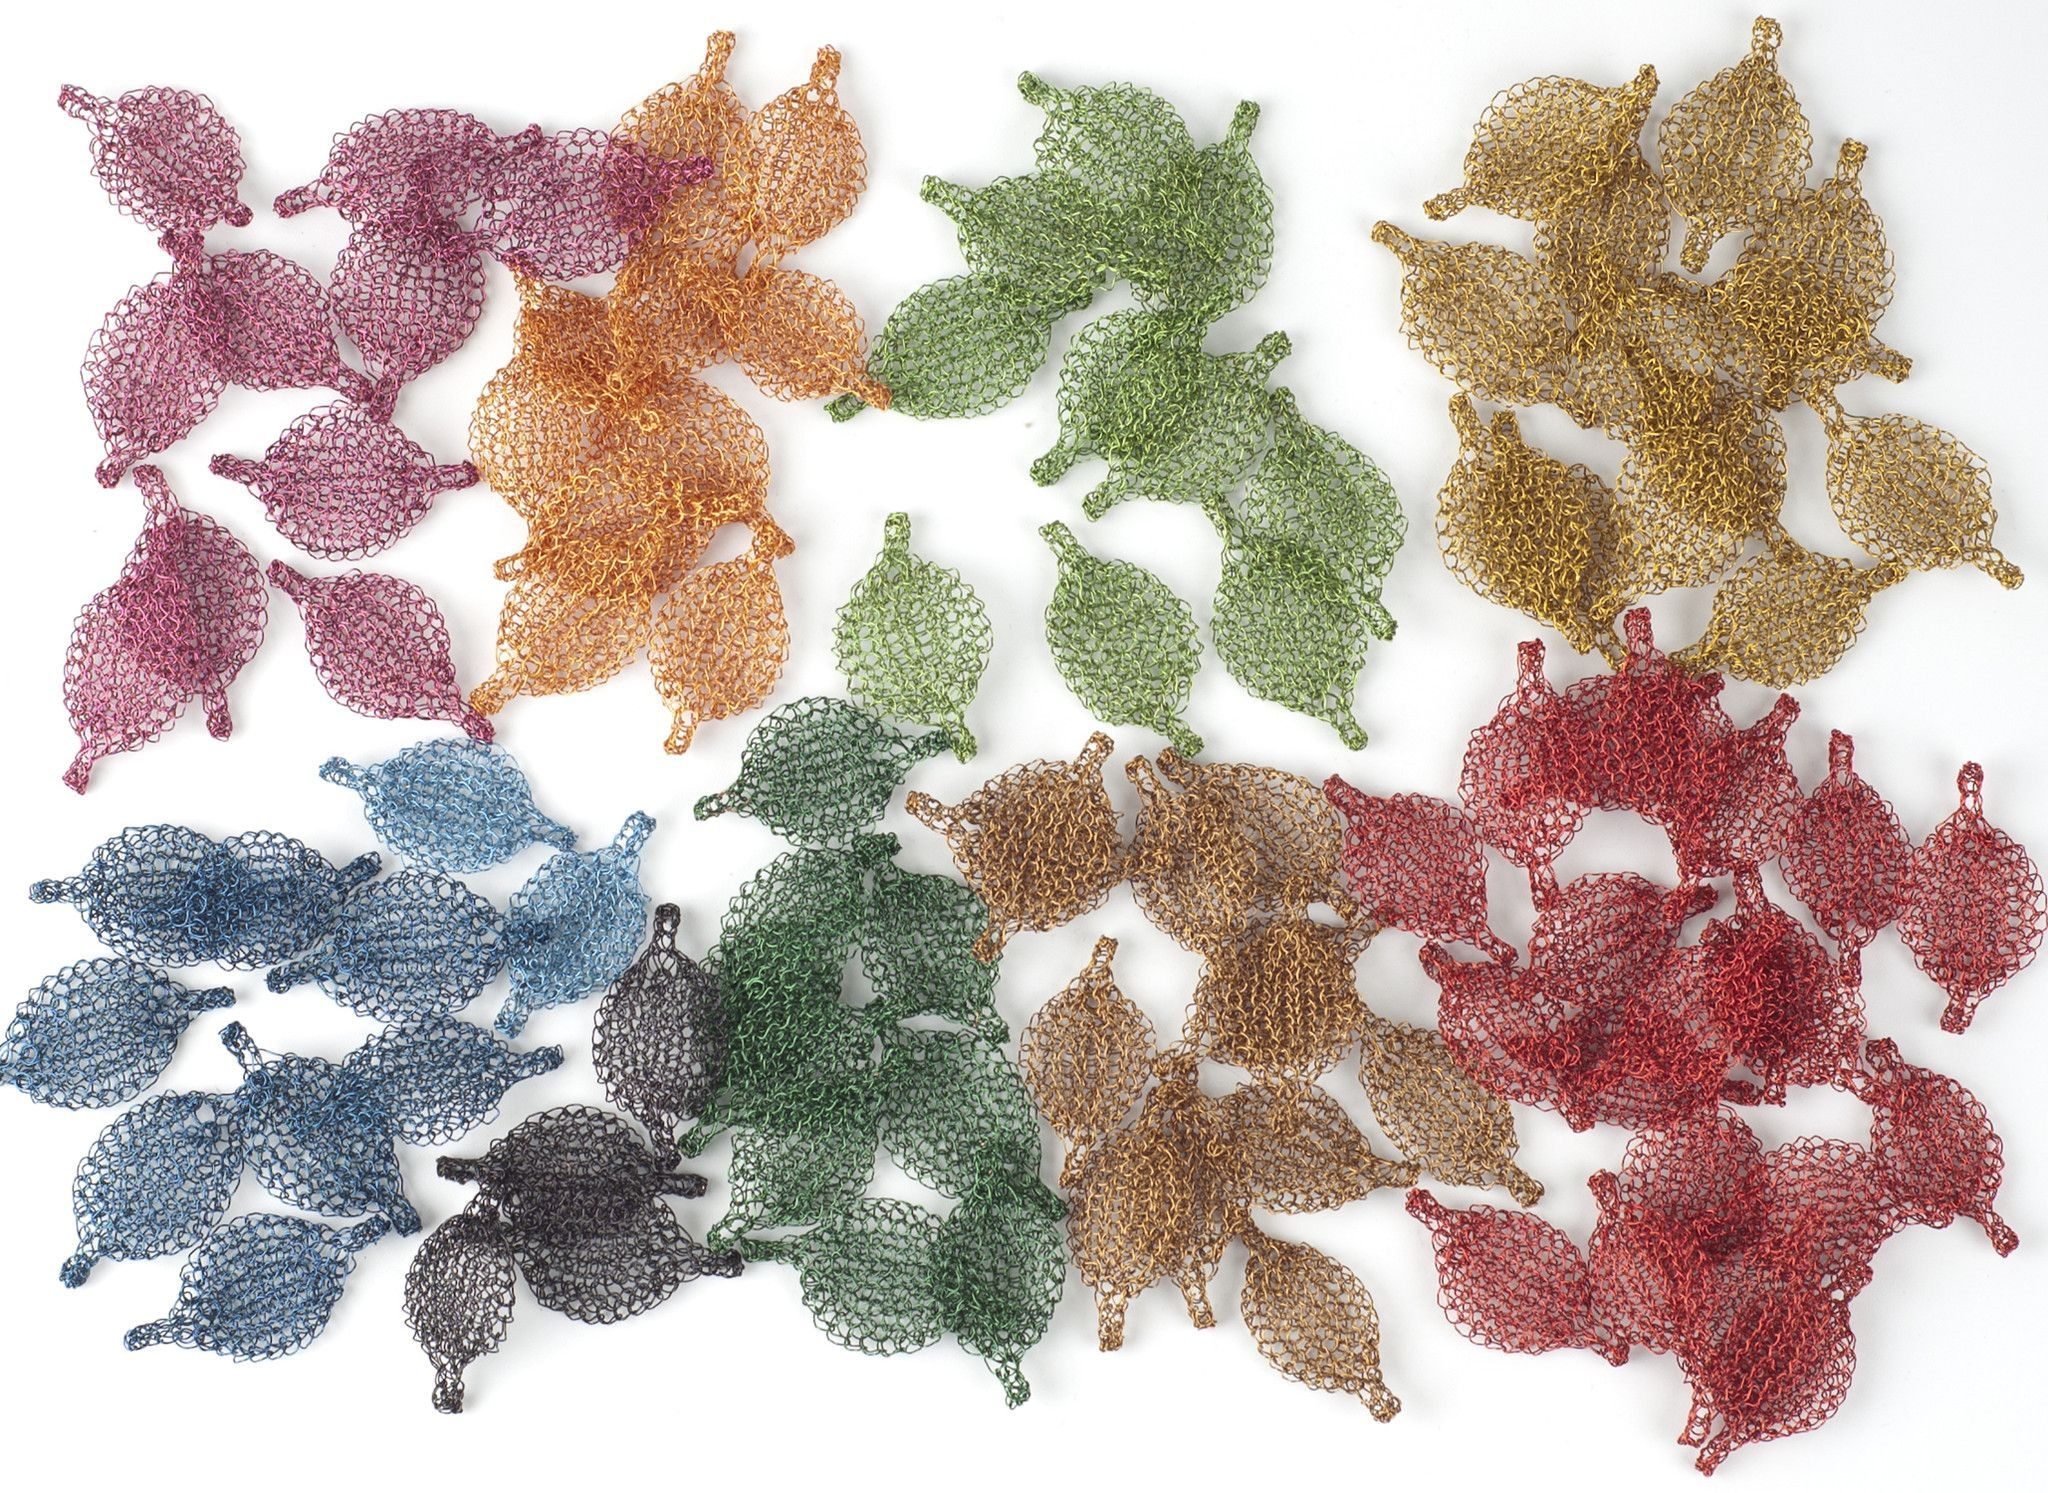 Unique Jewelry Making Supply Flat Crocheted Leaves Crochet Copper Wire Diagram Made Of Colors Are Only Available From The List Below